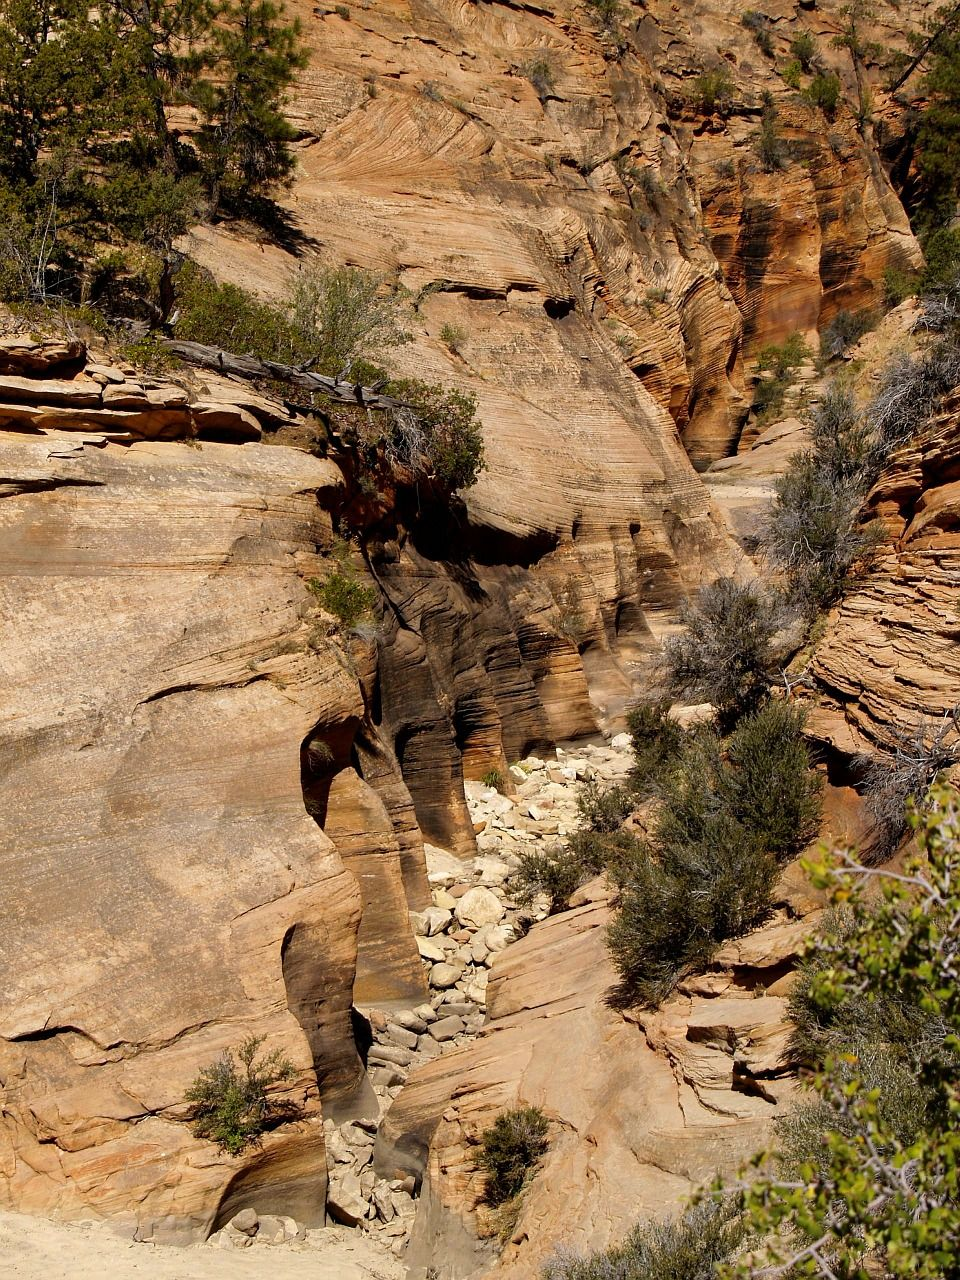 Free Images : geotagged, united states, usa, utah, Zion